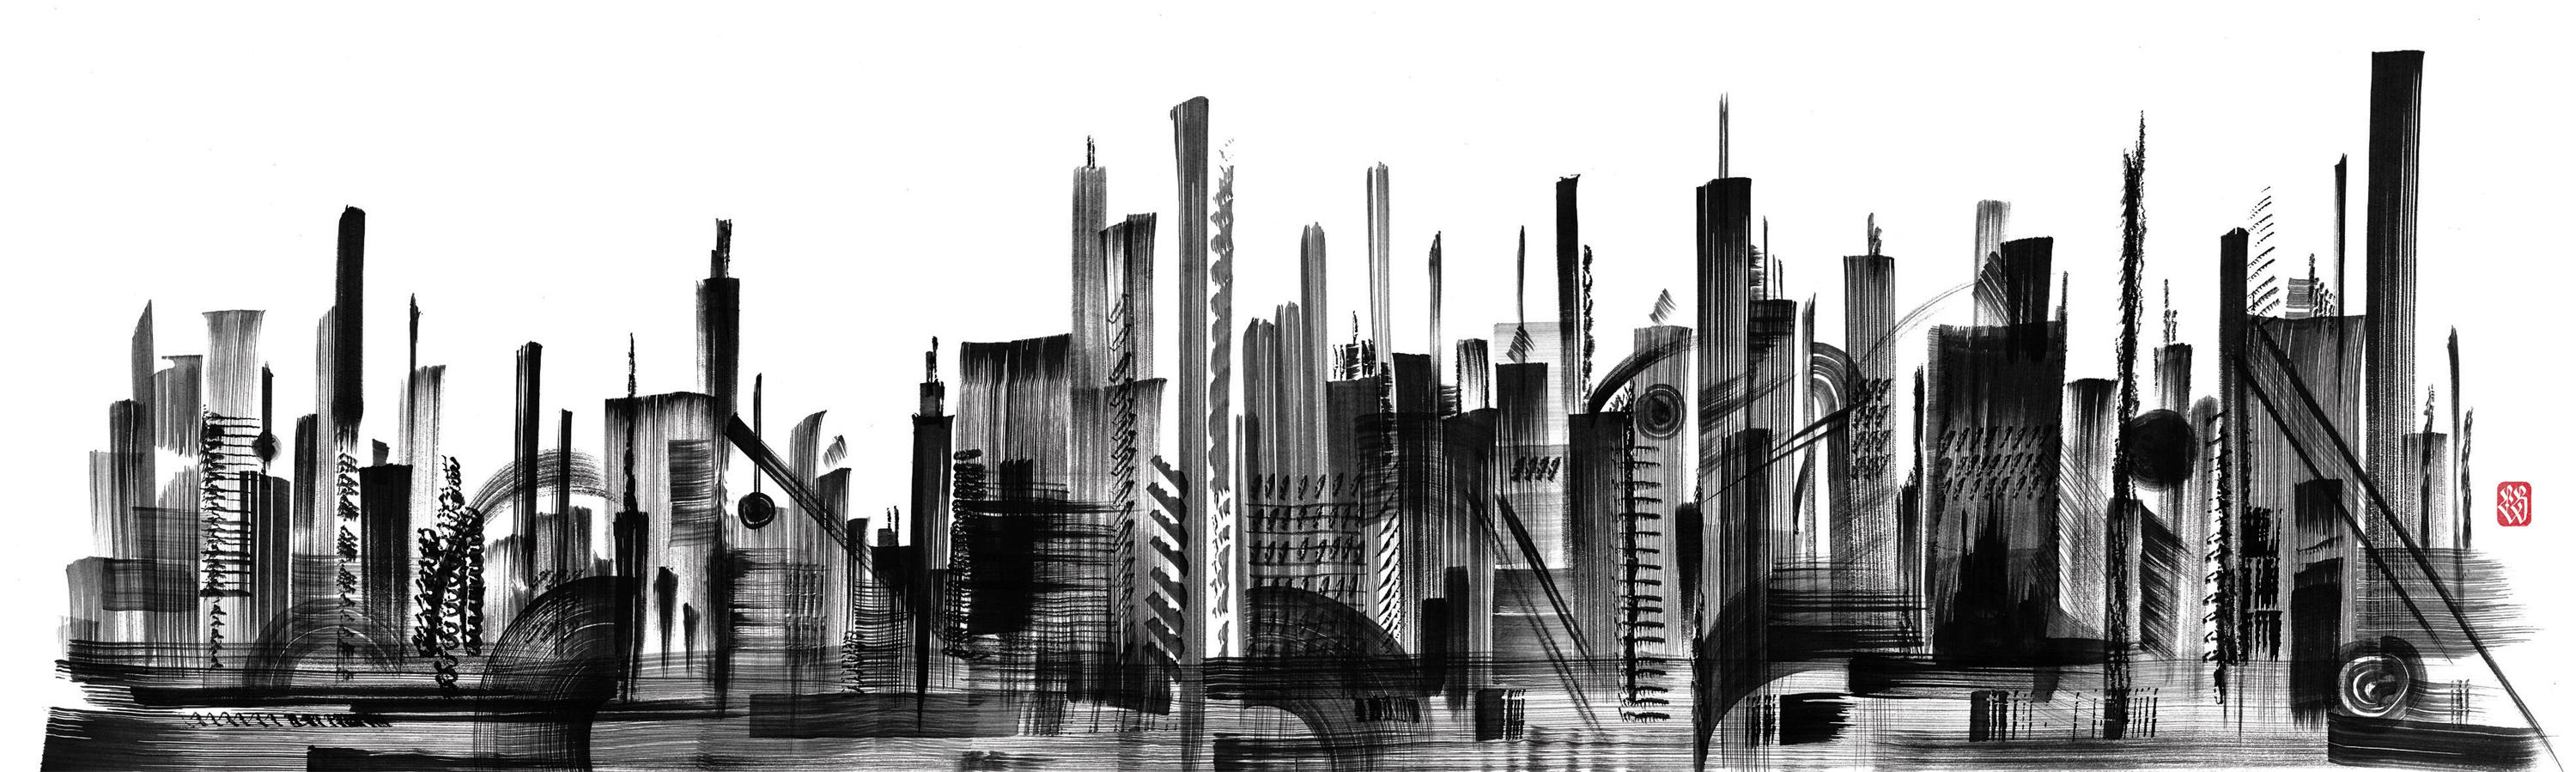 Wall Furniture Skyline Wall Coverings Wallpapers From Londonart